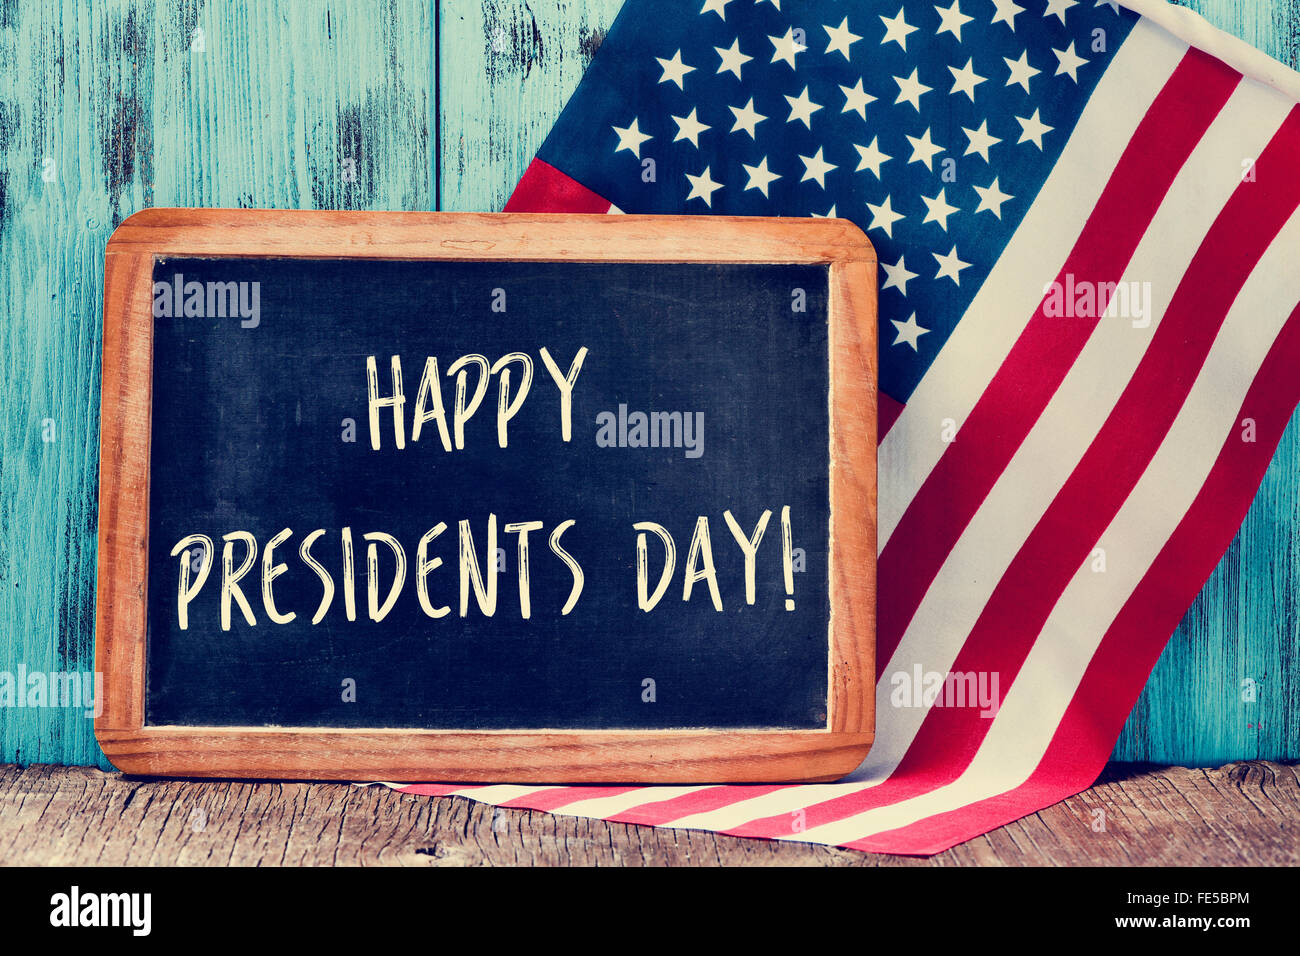 the text happy presidents day written in a chalkboard and a flag of the United States, on a rustic wooden background - Stock Image